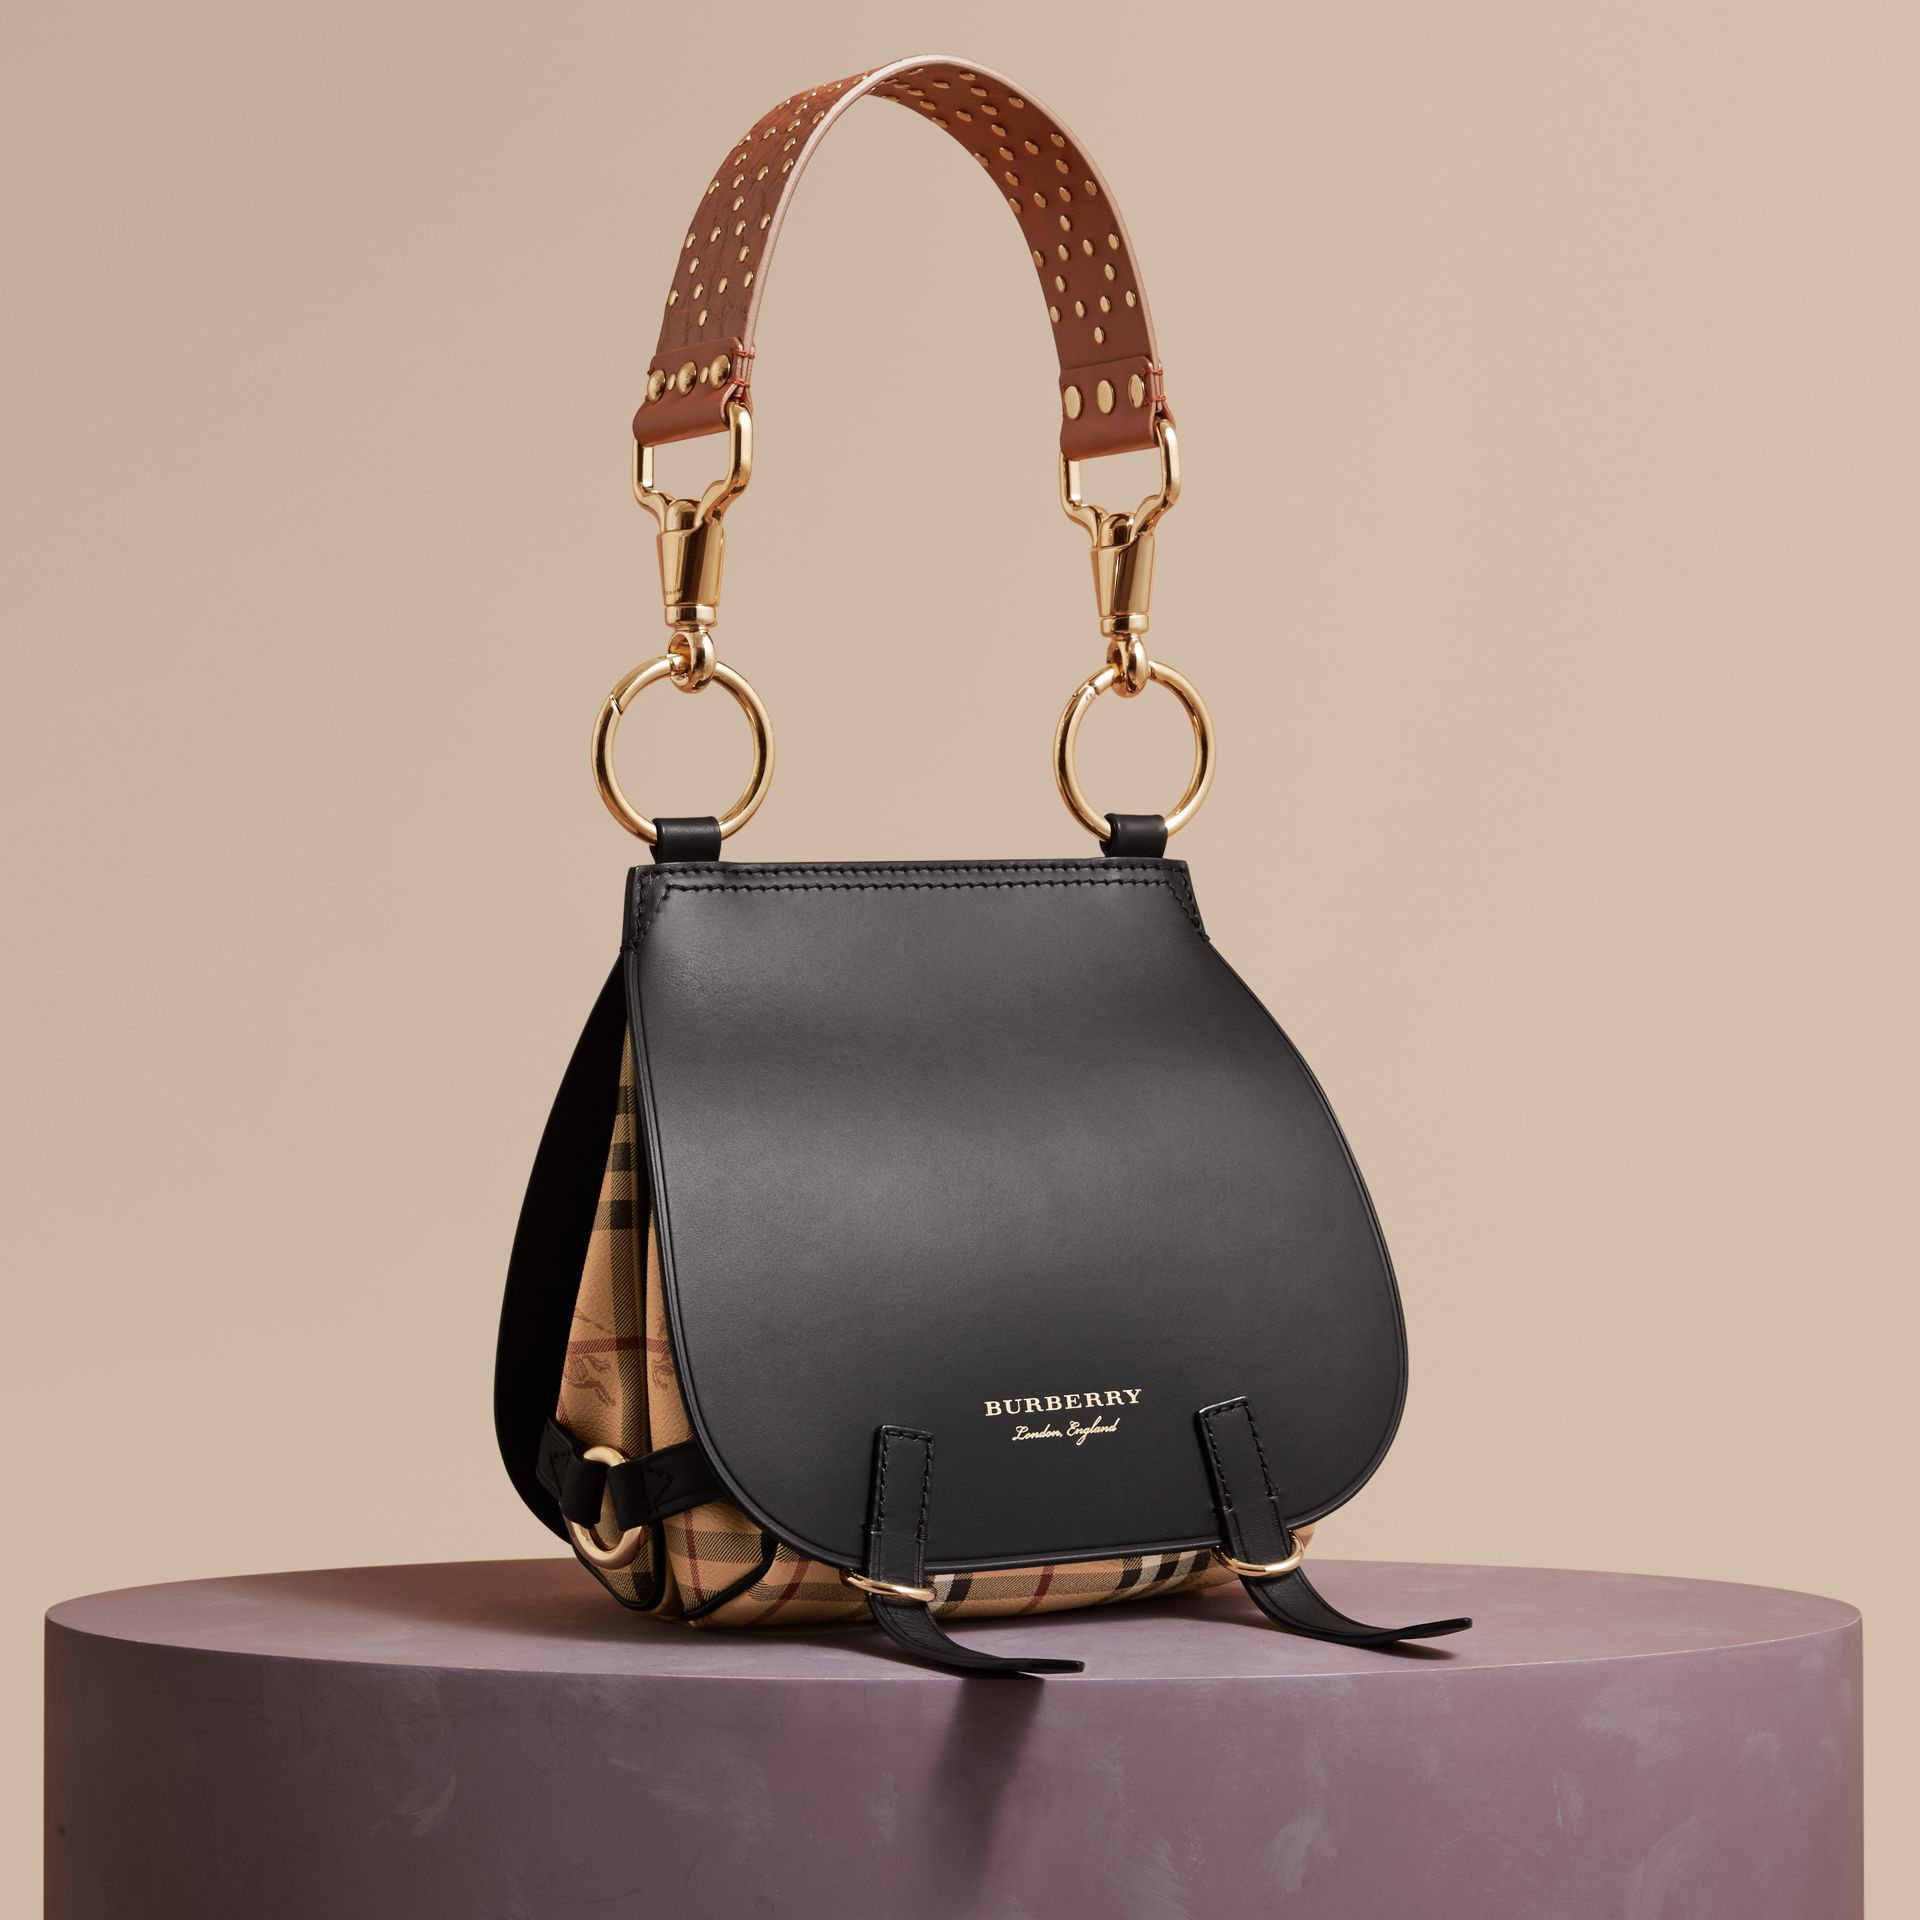 Borsa The Bridle in pelle, motivo Haymarket check e alligatore (Nero) - Donna | Burberry - immagine della galleria 1